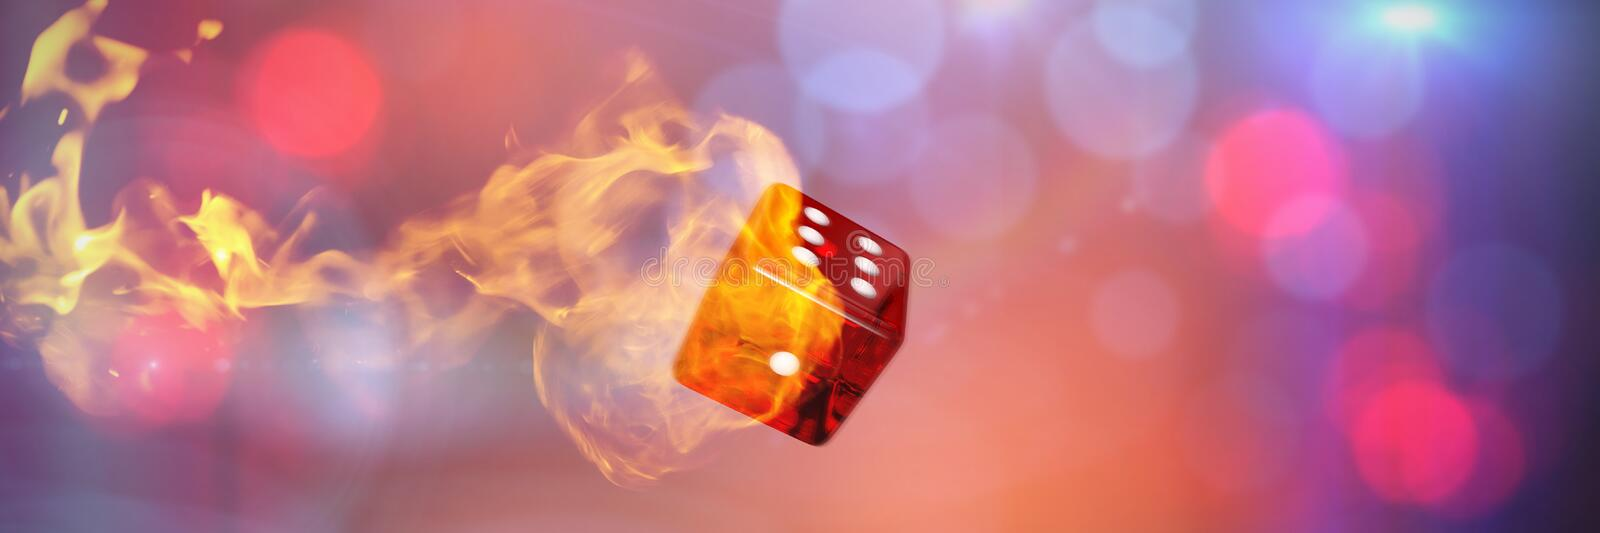 Composite image of computer graphic image of 3d dice. Computer graphic image of 3D dice against fire vector illustration